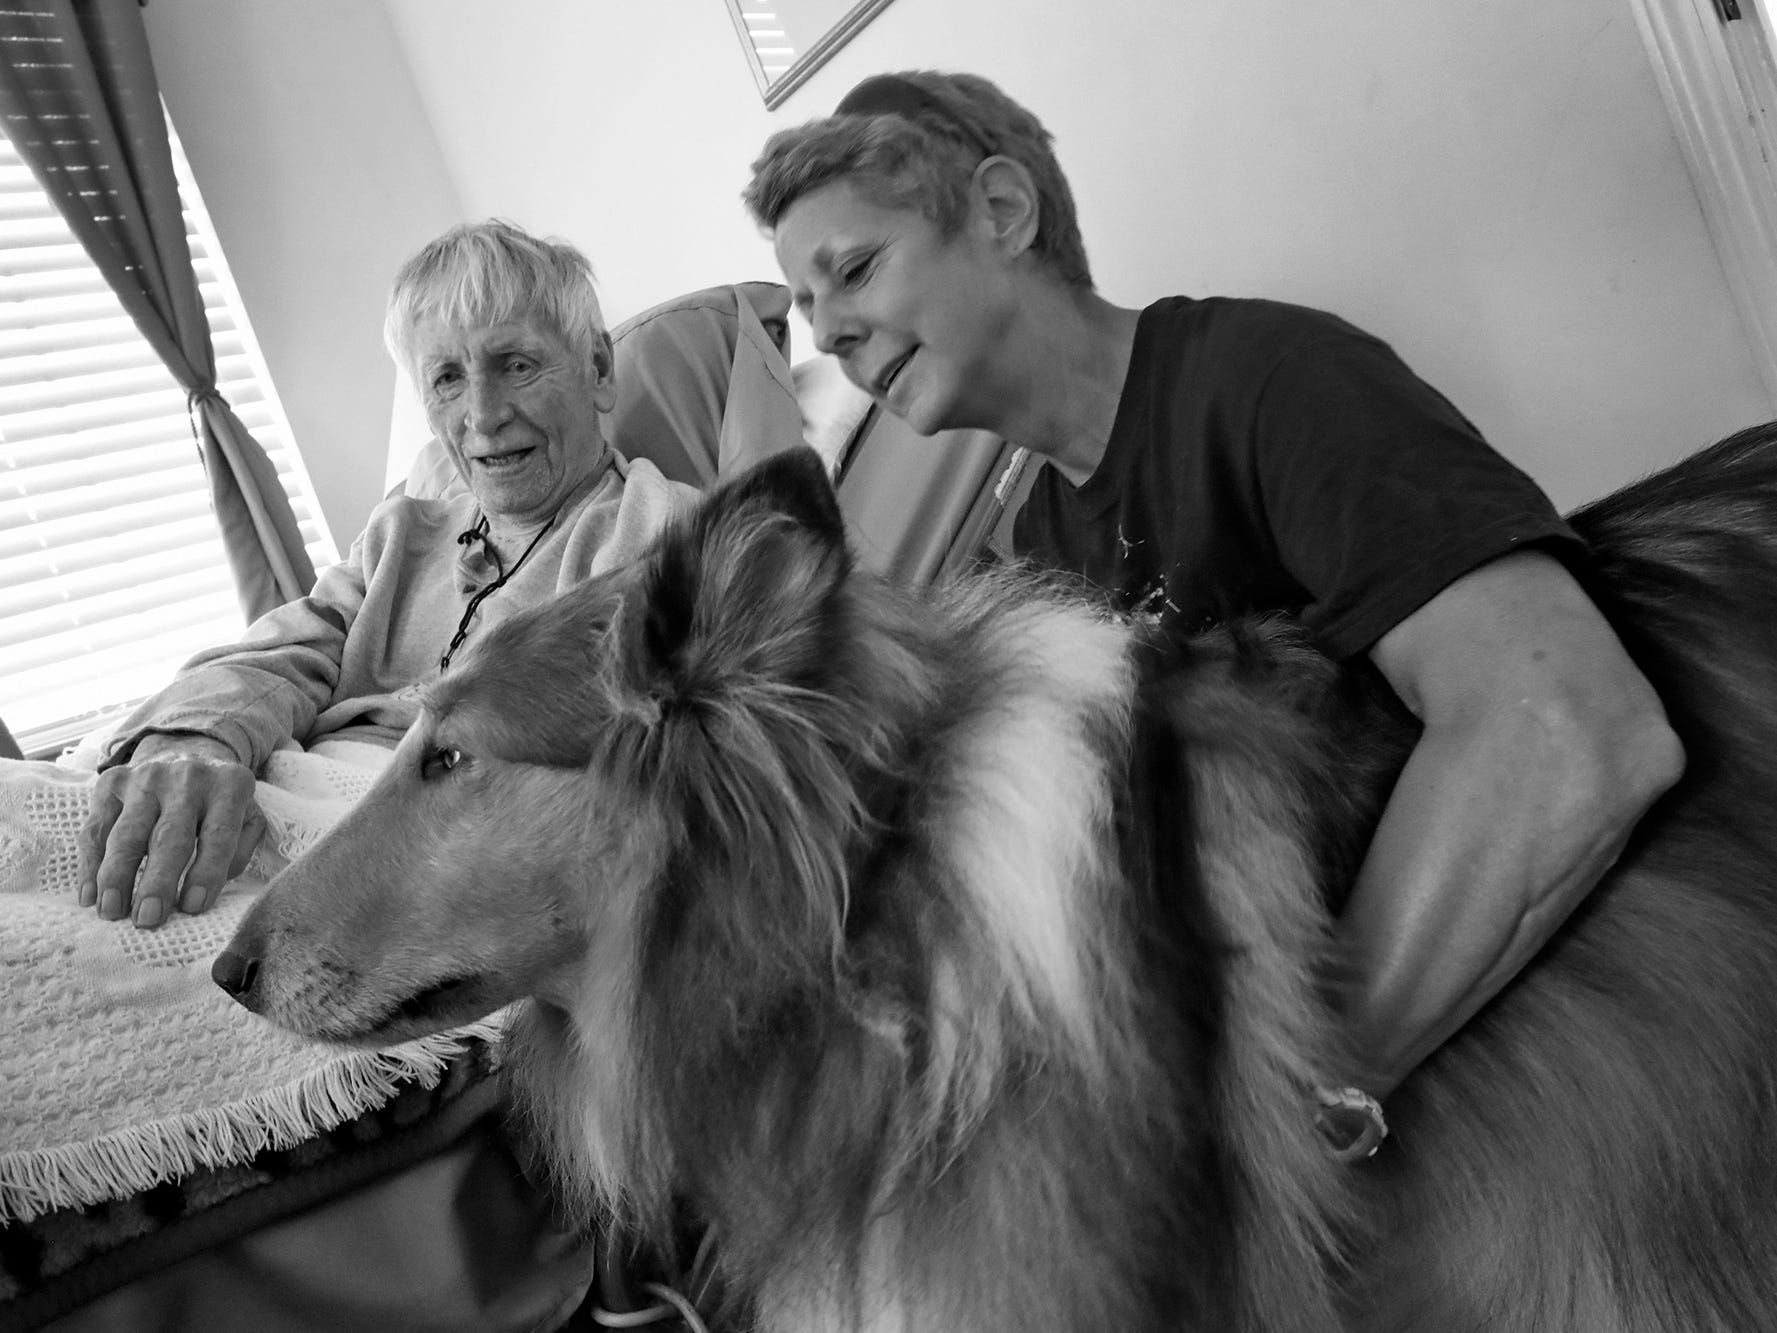 Marie Koenig, right, and Sir Willis visit with Dewey Logeland at the Abbie Hunt Bryce Home, Friday, Sept. 21, 2018.  The home offers hospice for the dying poor. Logeland moved to the home in 2018.